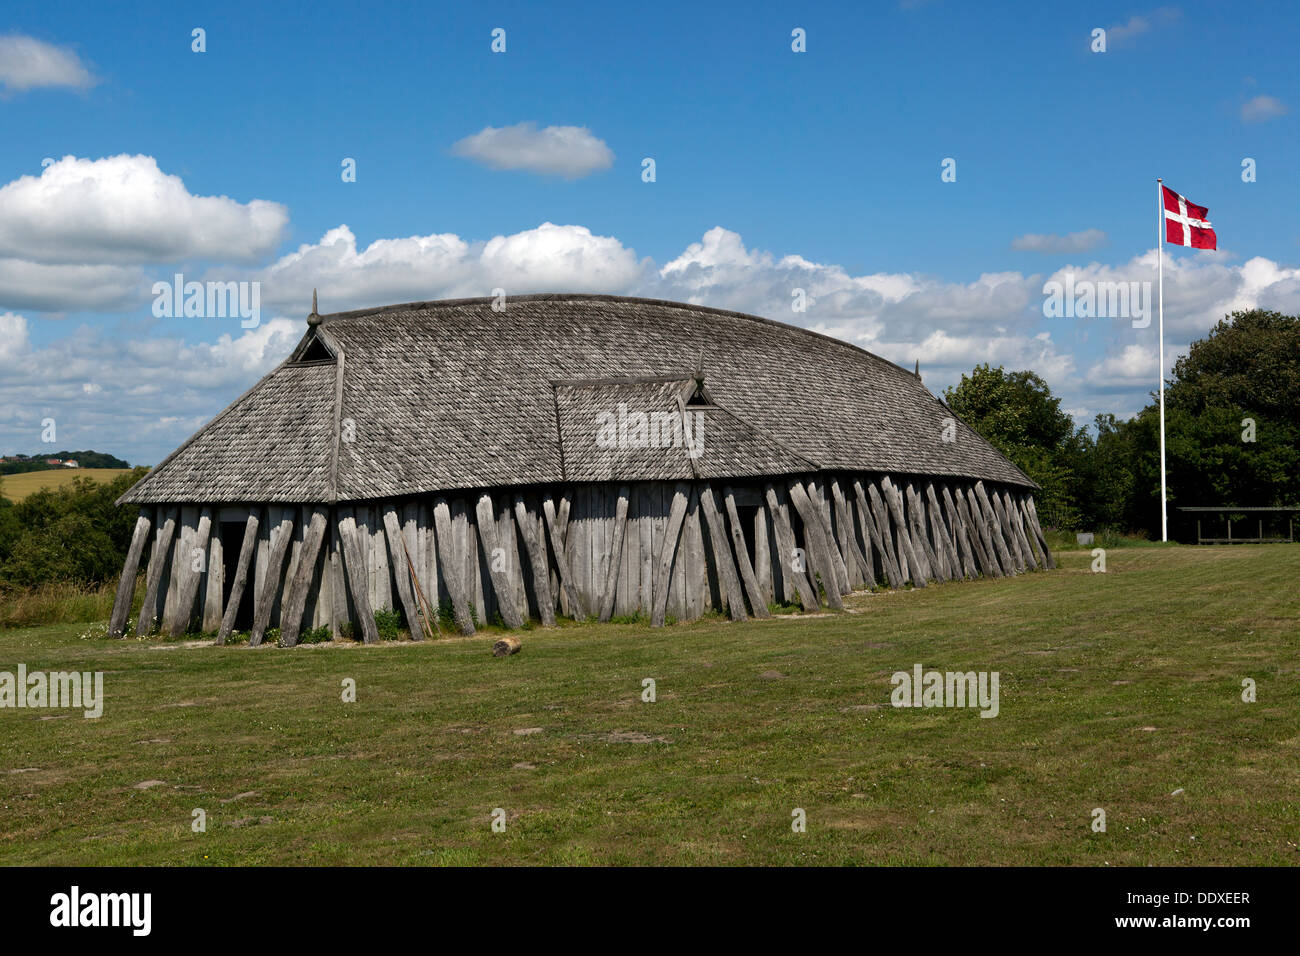 Viking longhouse at Fyrkat, Hobro, Denmark. - Stock Image